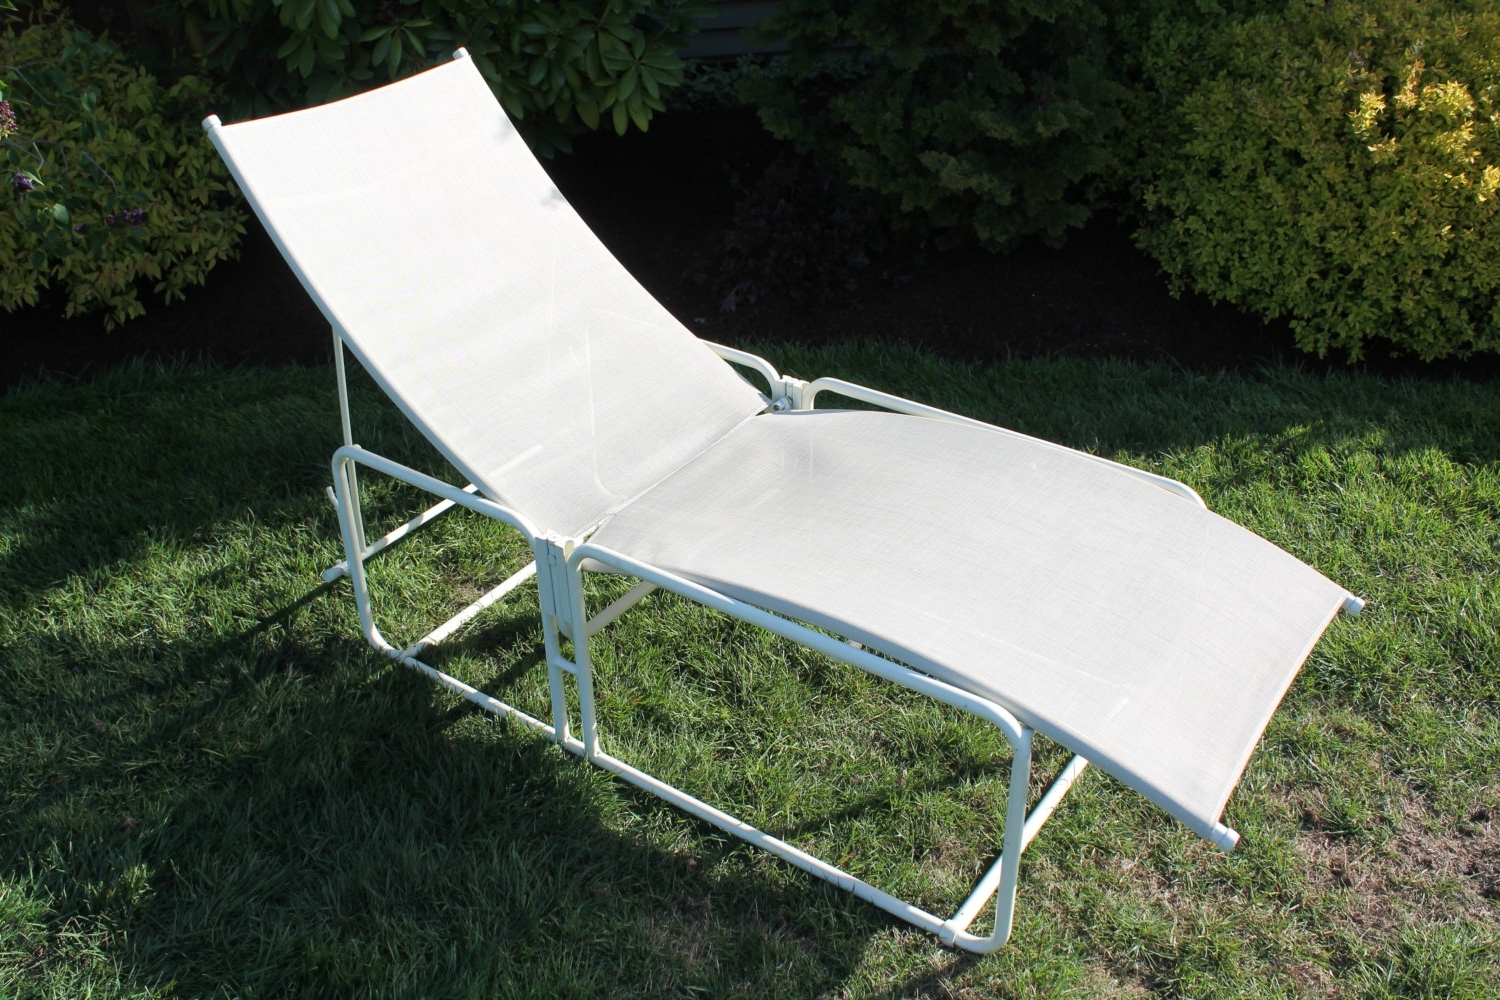 Brown Jordan Chaise Lounge Chairs For Preferred Vintage Brown Jordan Nomad Chaise Lounge Patio Chair – Haute Juice (View 15 of 15)